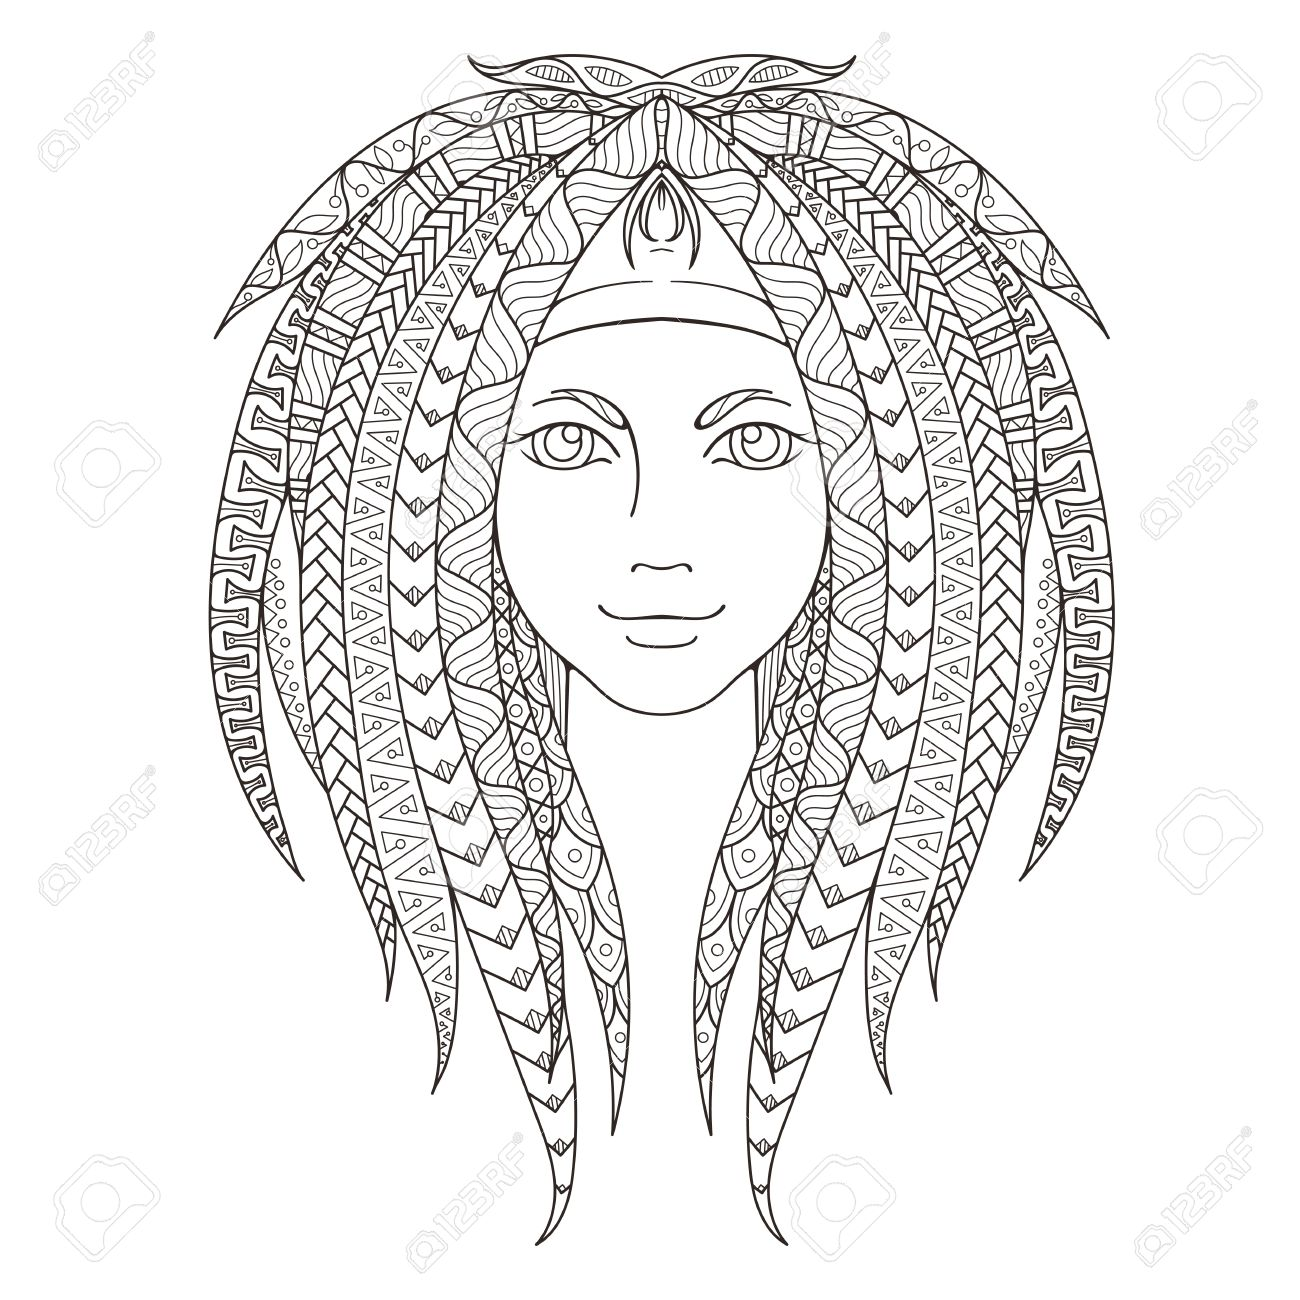 Young Girl With Patterned Dreadlocks. Page For Coloring. Ornate ...